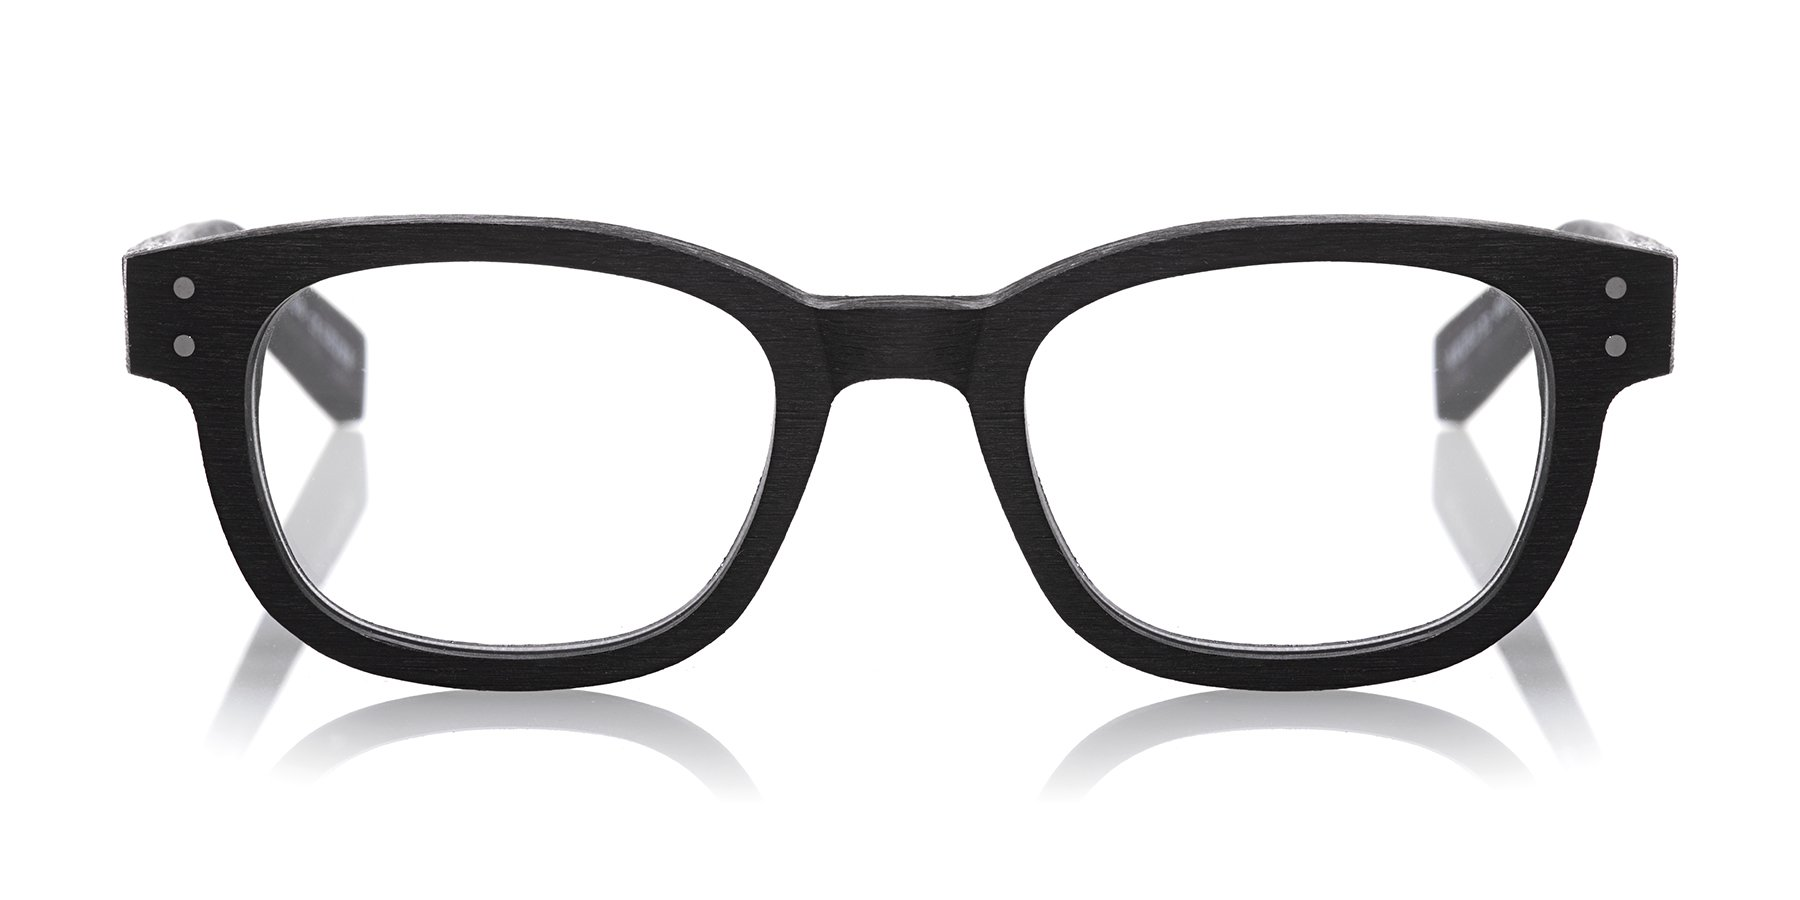 eyebobs Butch All Day Reader, Black with a matte woodgrain finish, Reading Glasses SUPERIOR QUALITY-because your eyes deserve the good stuff